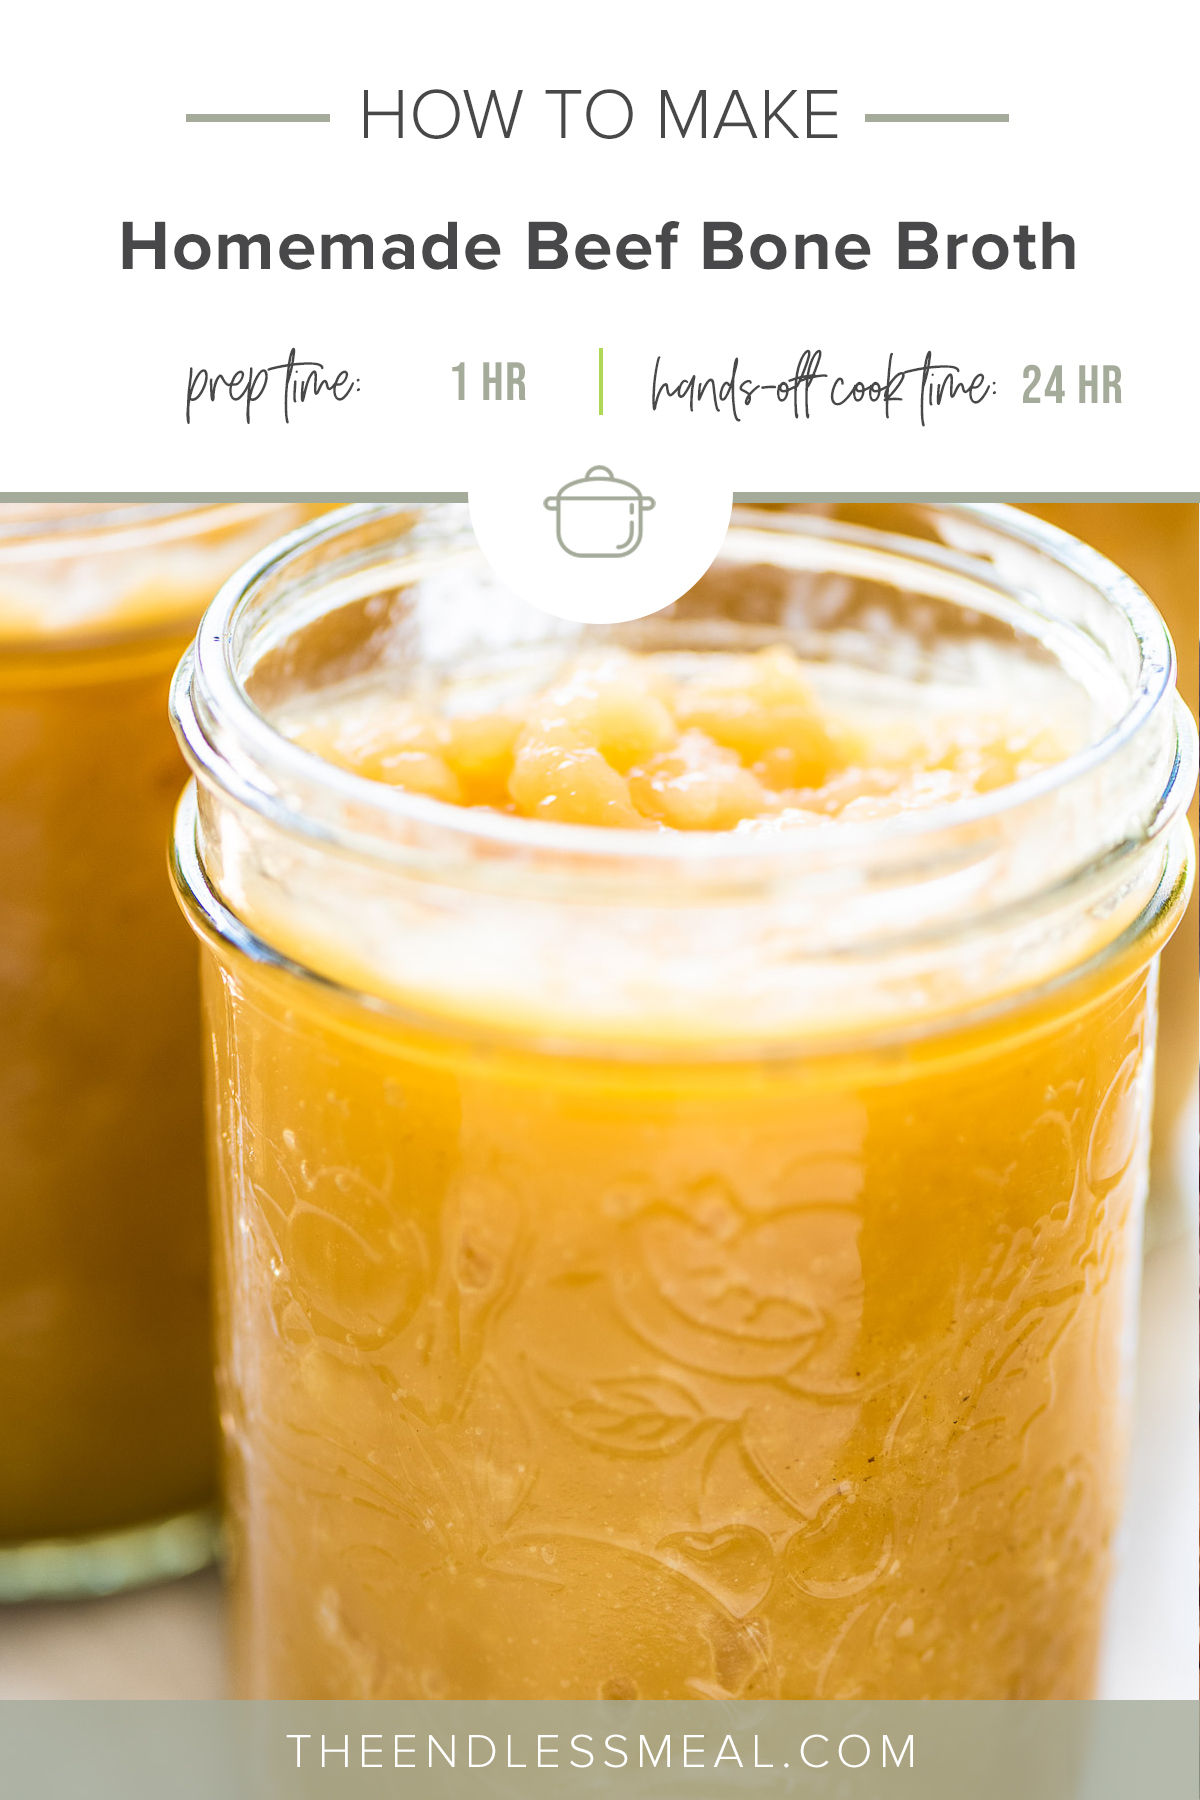 A glass jar filled with beef bone broth with the recipe title on top of the picture.